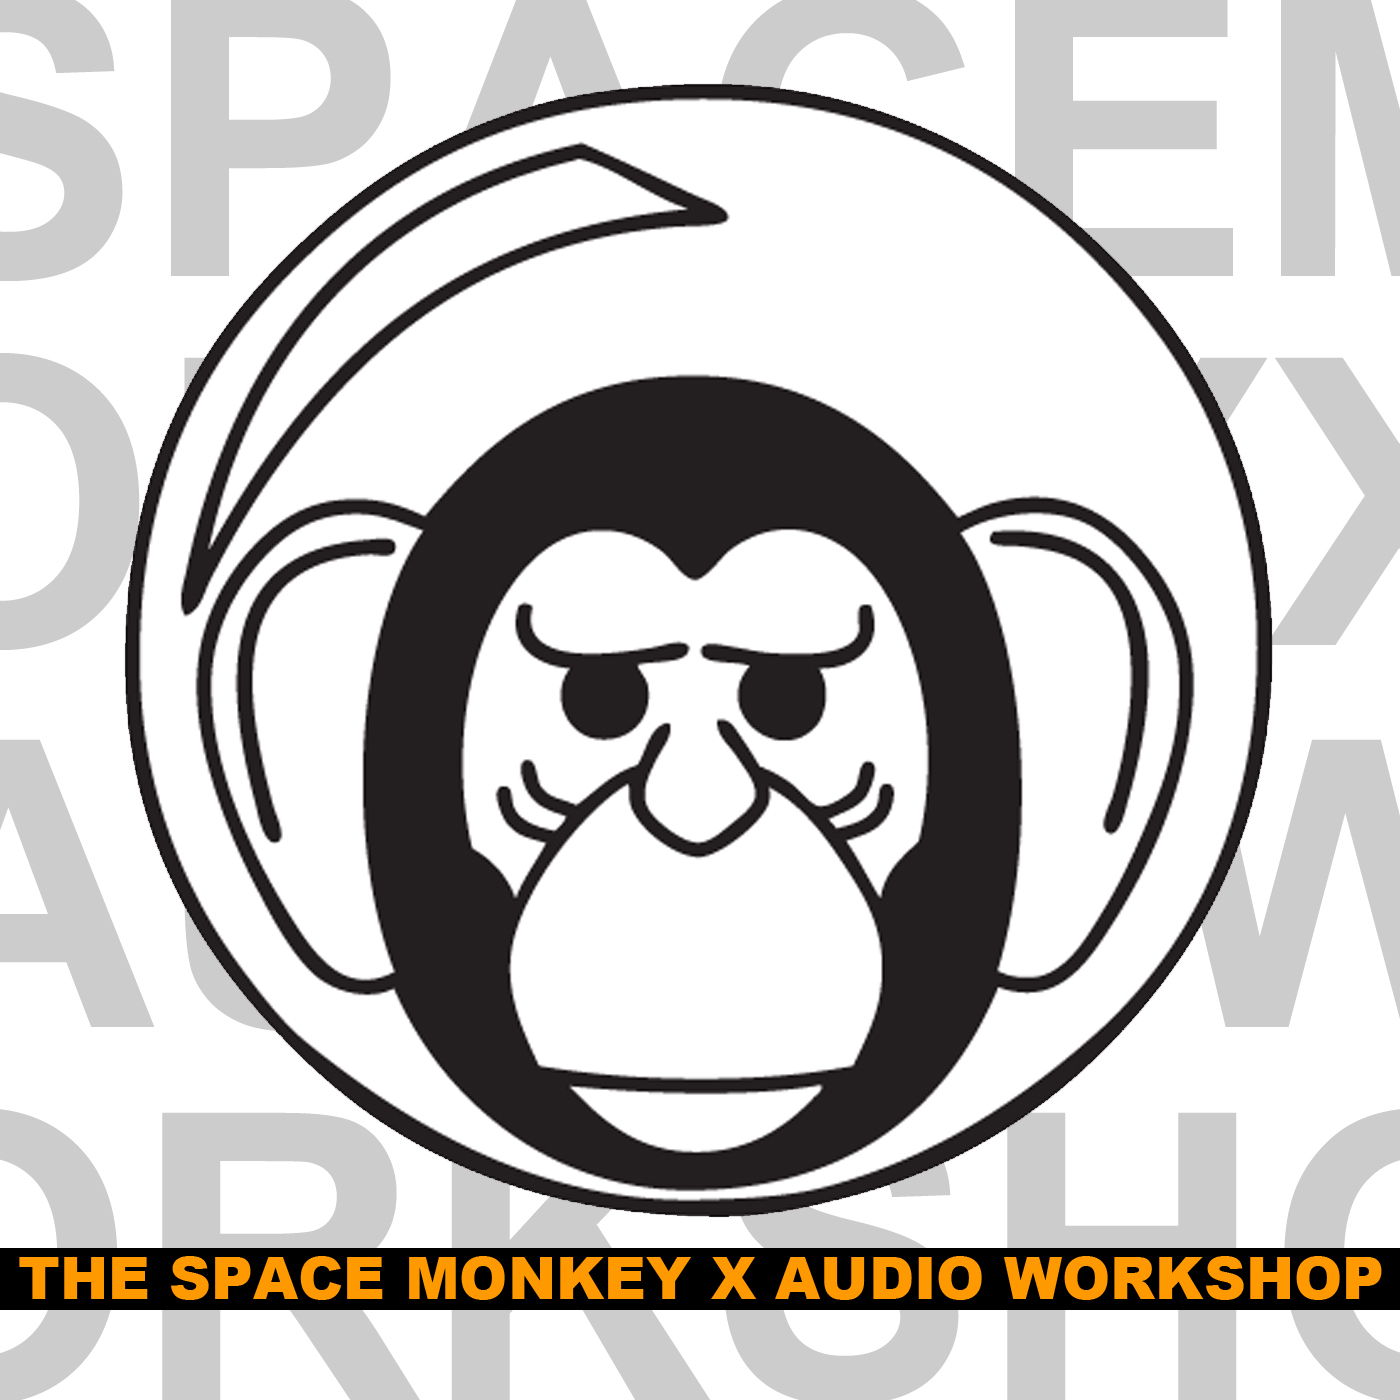 The Space Monkey X Audio Workshop